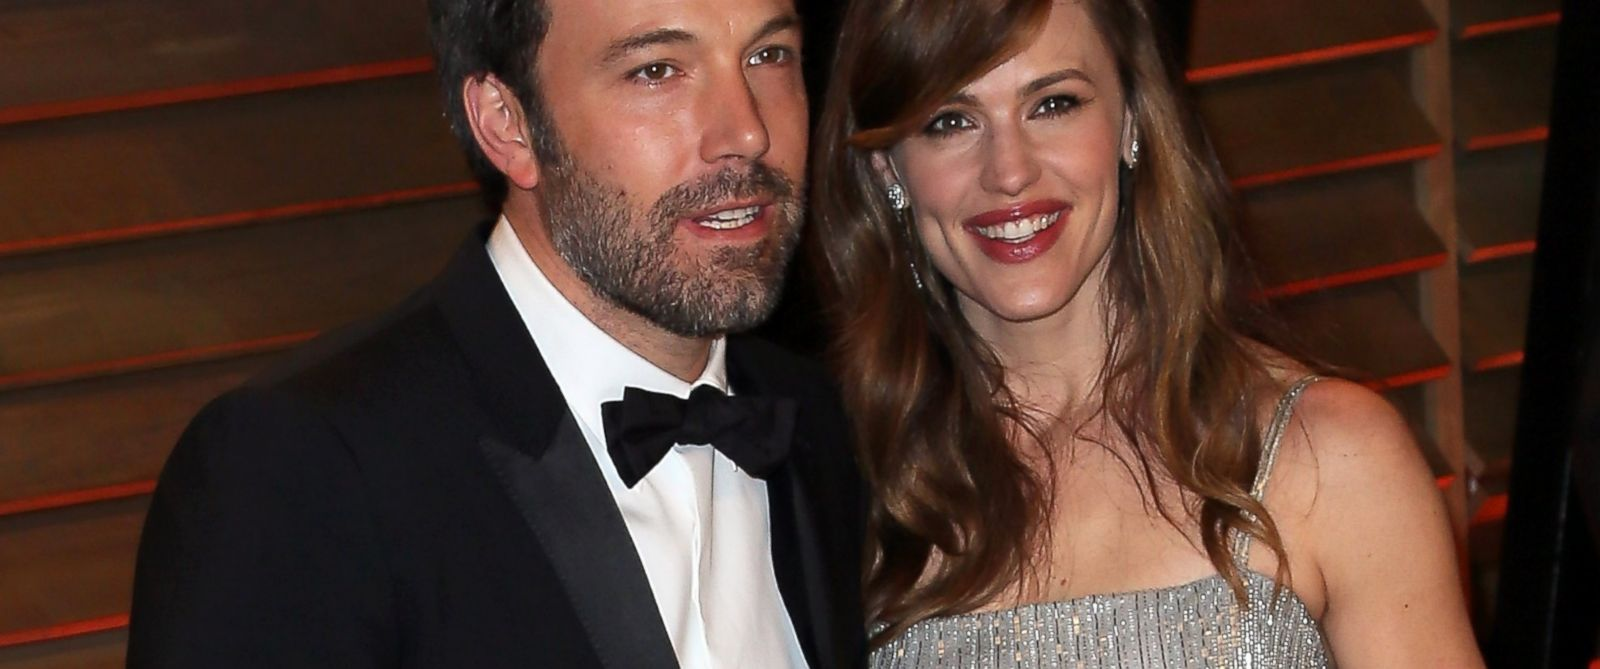 PHOTO: Actor-director Ben Affleck, left, and his wife, the actress Jennifer Garner, attend the 2014 Vanity Fair Oscar Party hosted by Graydon Carter on March 2, 2014 in West Hollywood, California.